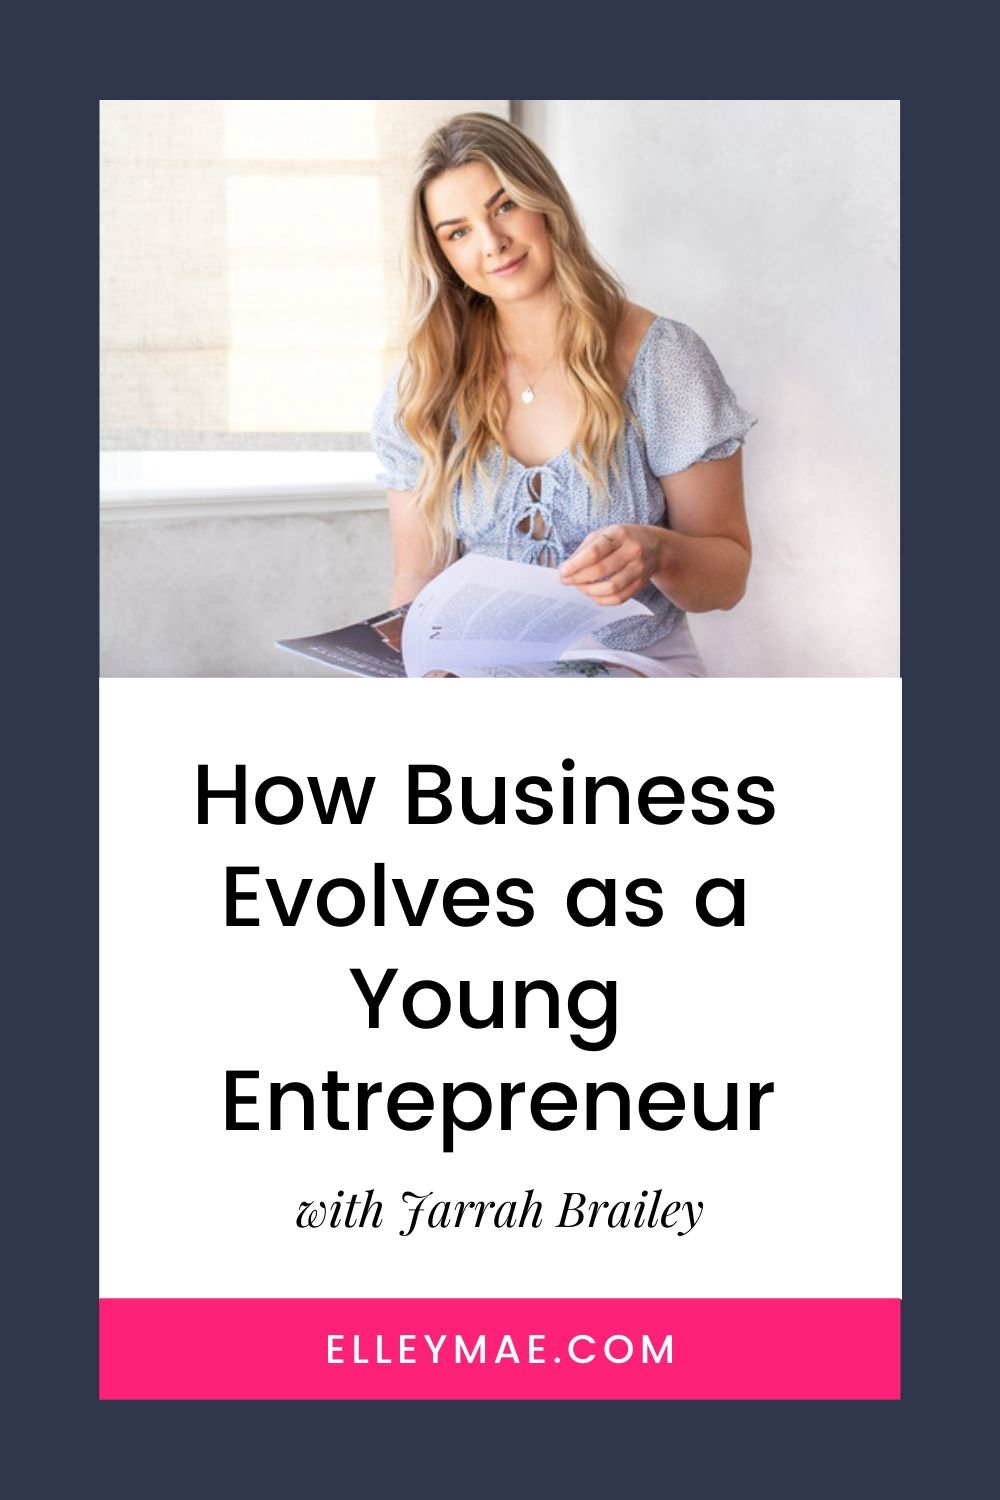 The Evolution of Being a Young Entrepreneur with Jarrah Brailey